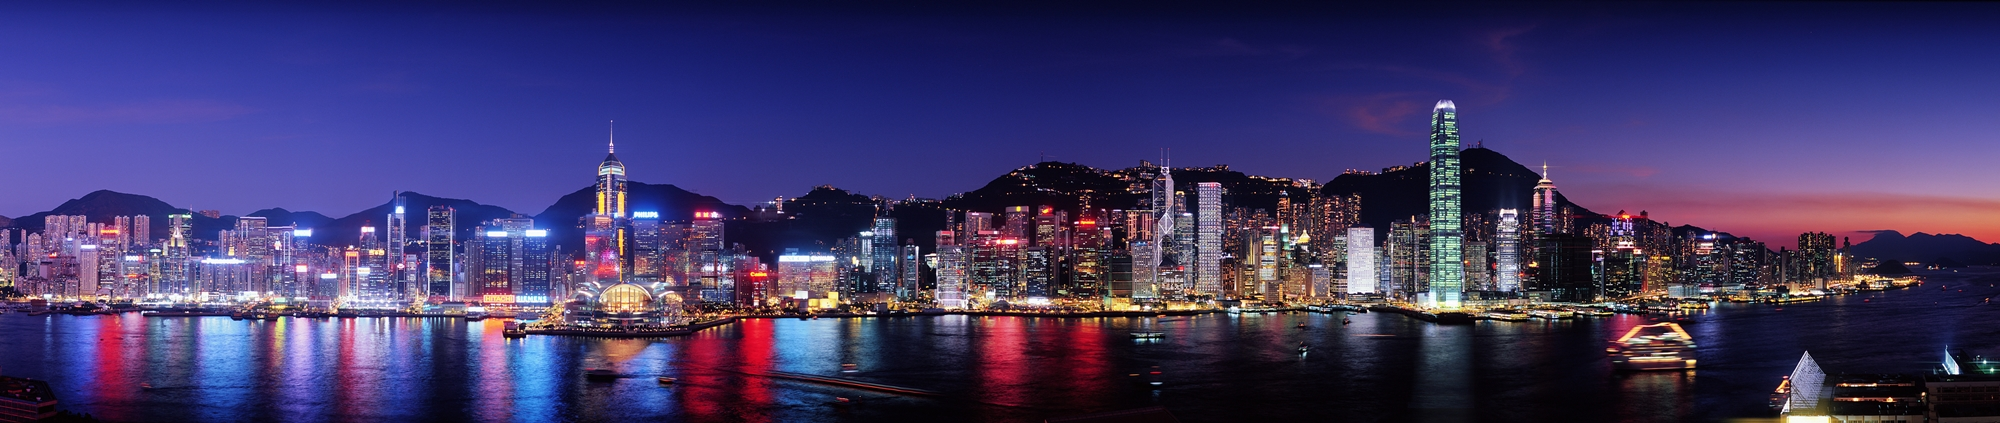 A panoramic view of Victoria Harbour and the downtown area of Hong Kong Island, China